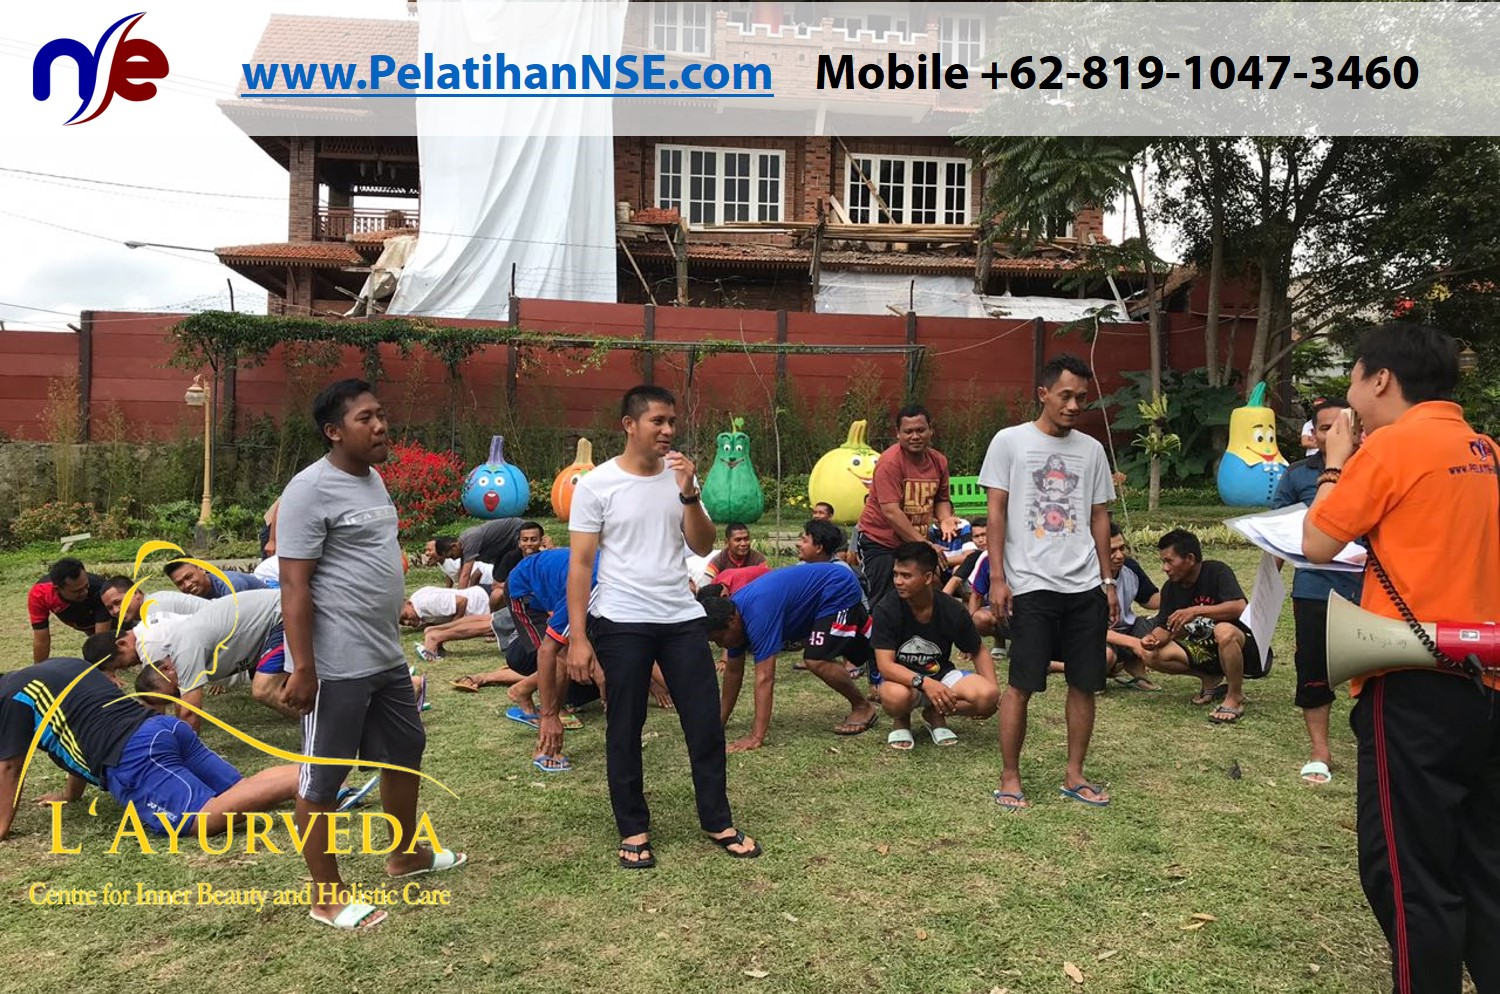 Happy Healthy Professional Kereta Api Indonesia 18-19 Oktober 2017 - Games di Lapangan